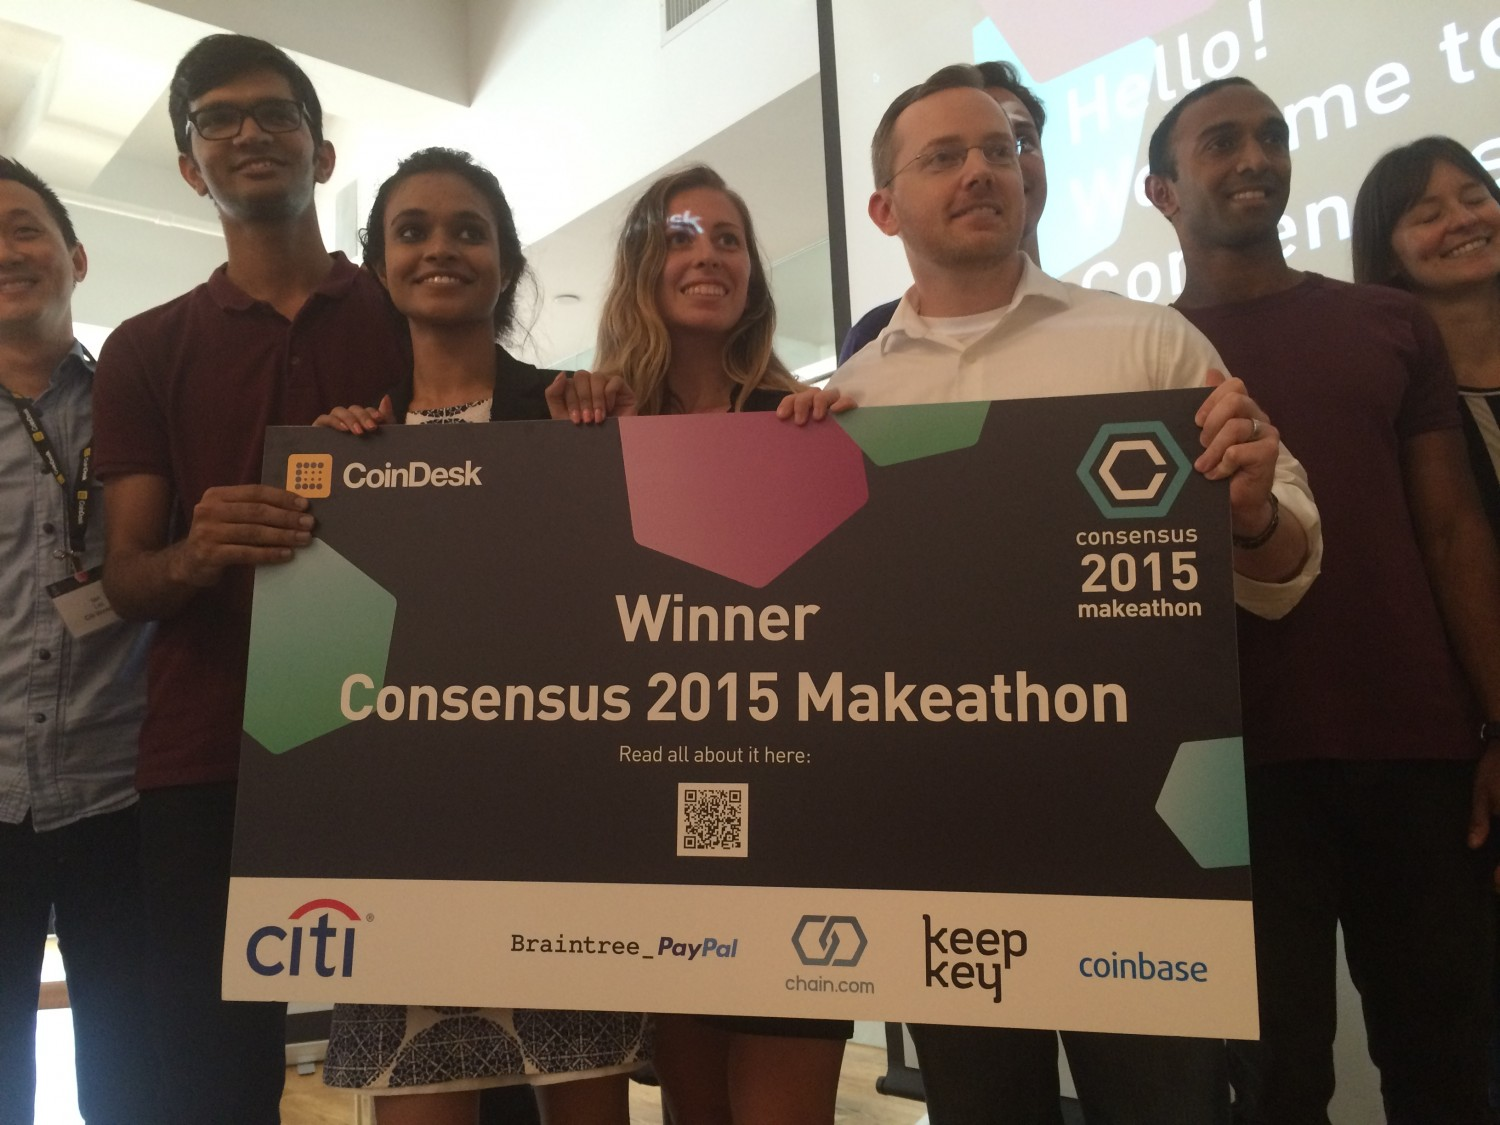 makeathon, consensus